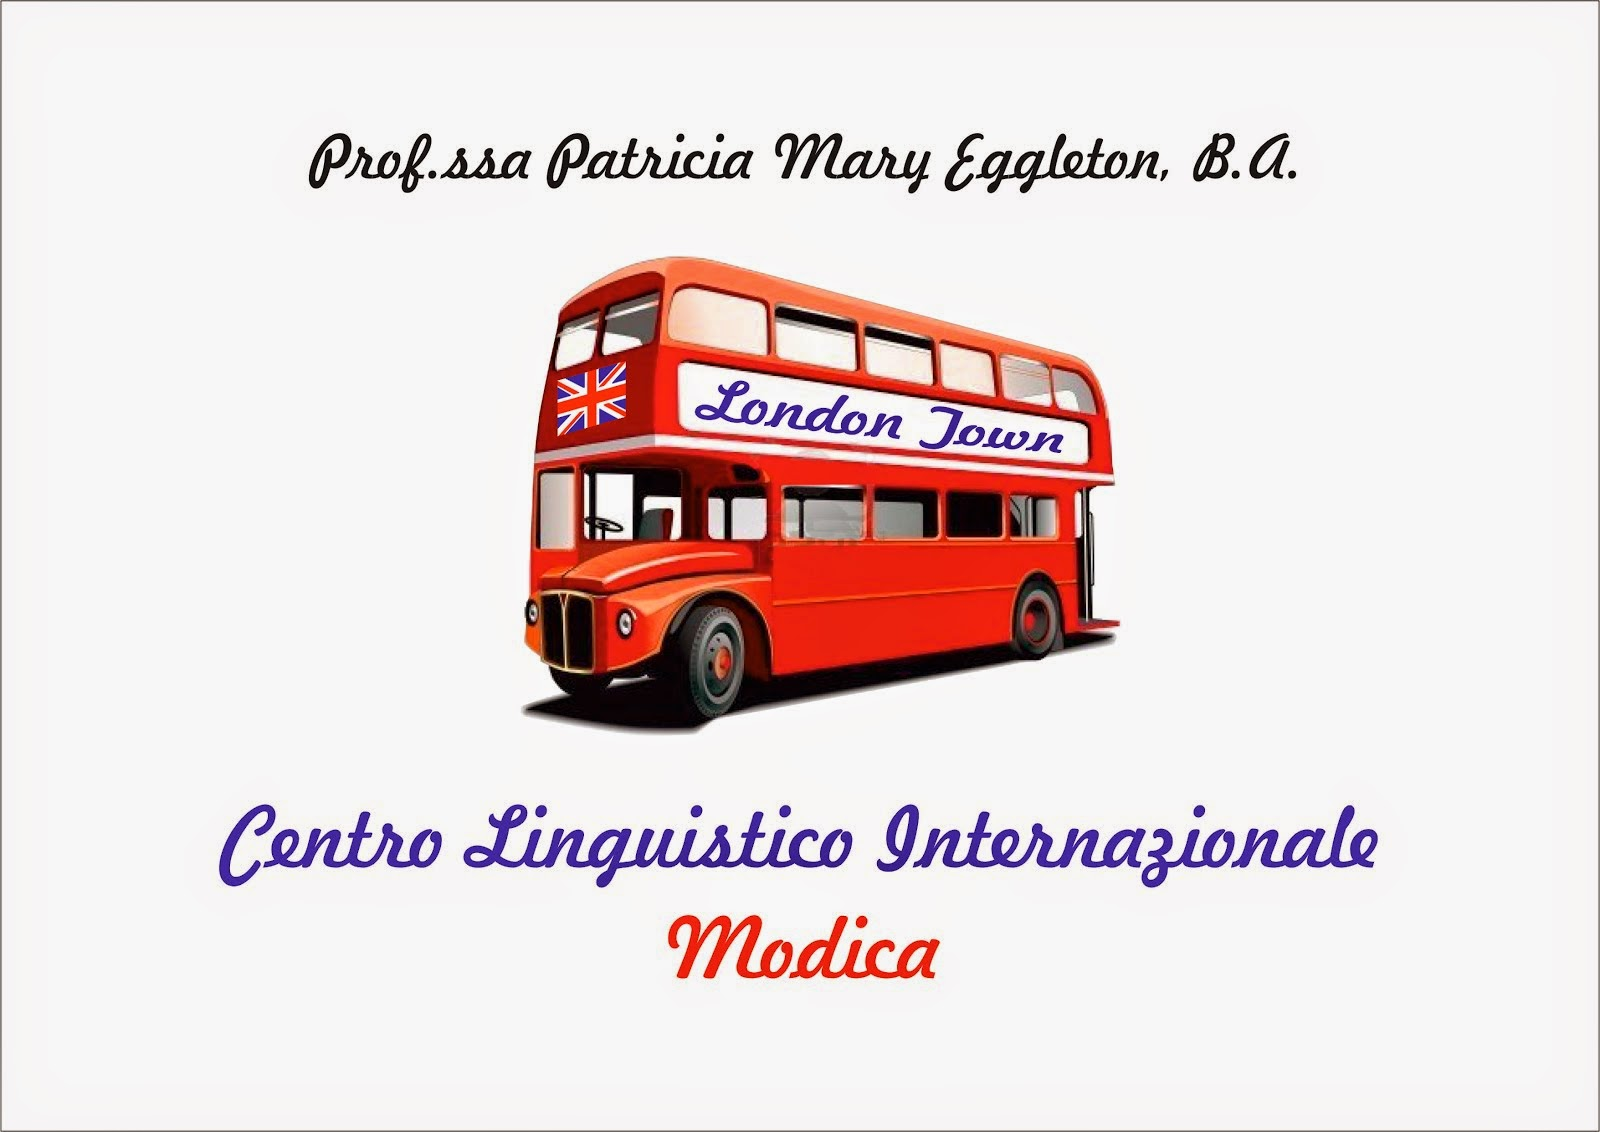 London Town, Modica - Centro Linguistico Internazionale